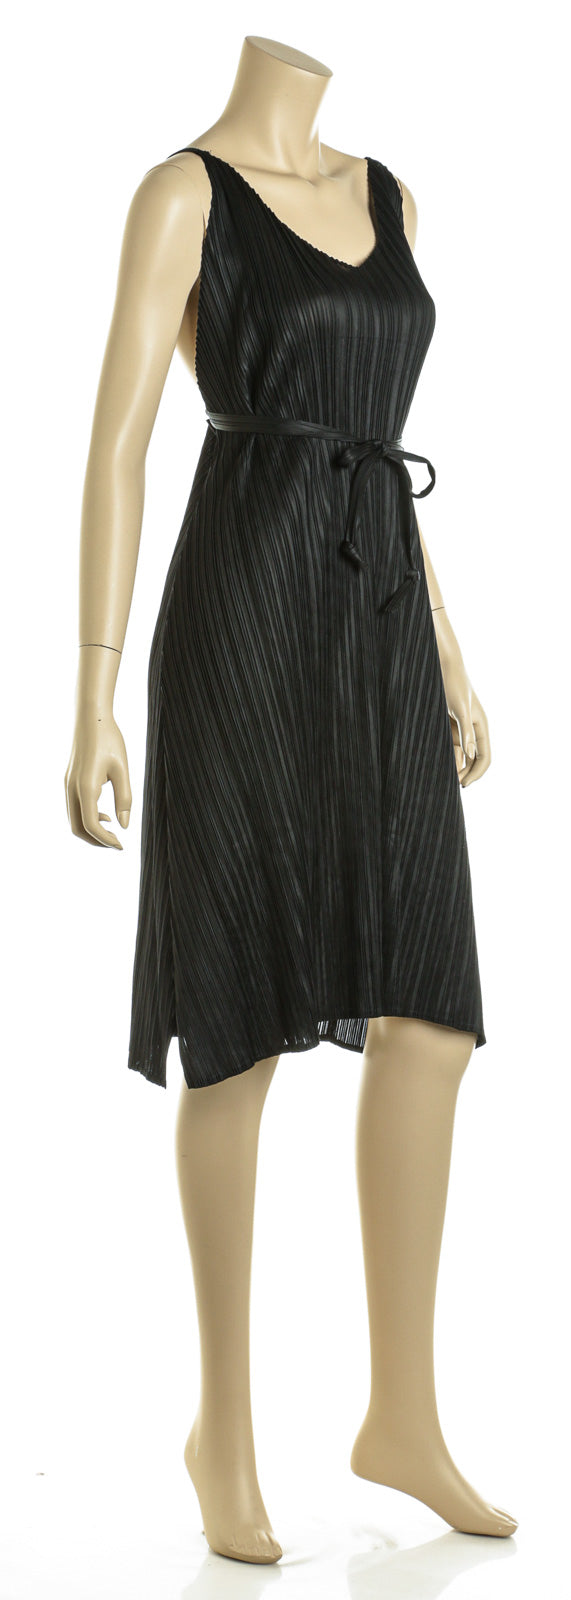 Masaki Matsuka Black Pleated Spaghetti Strap Sheath Dress (Size S)